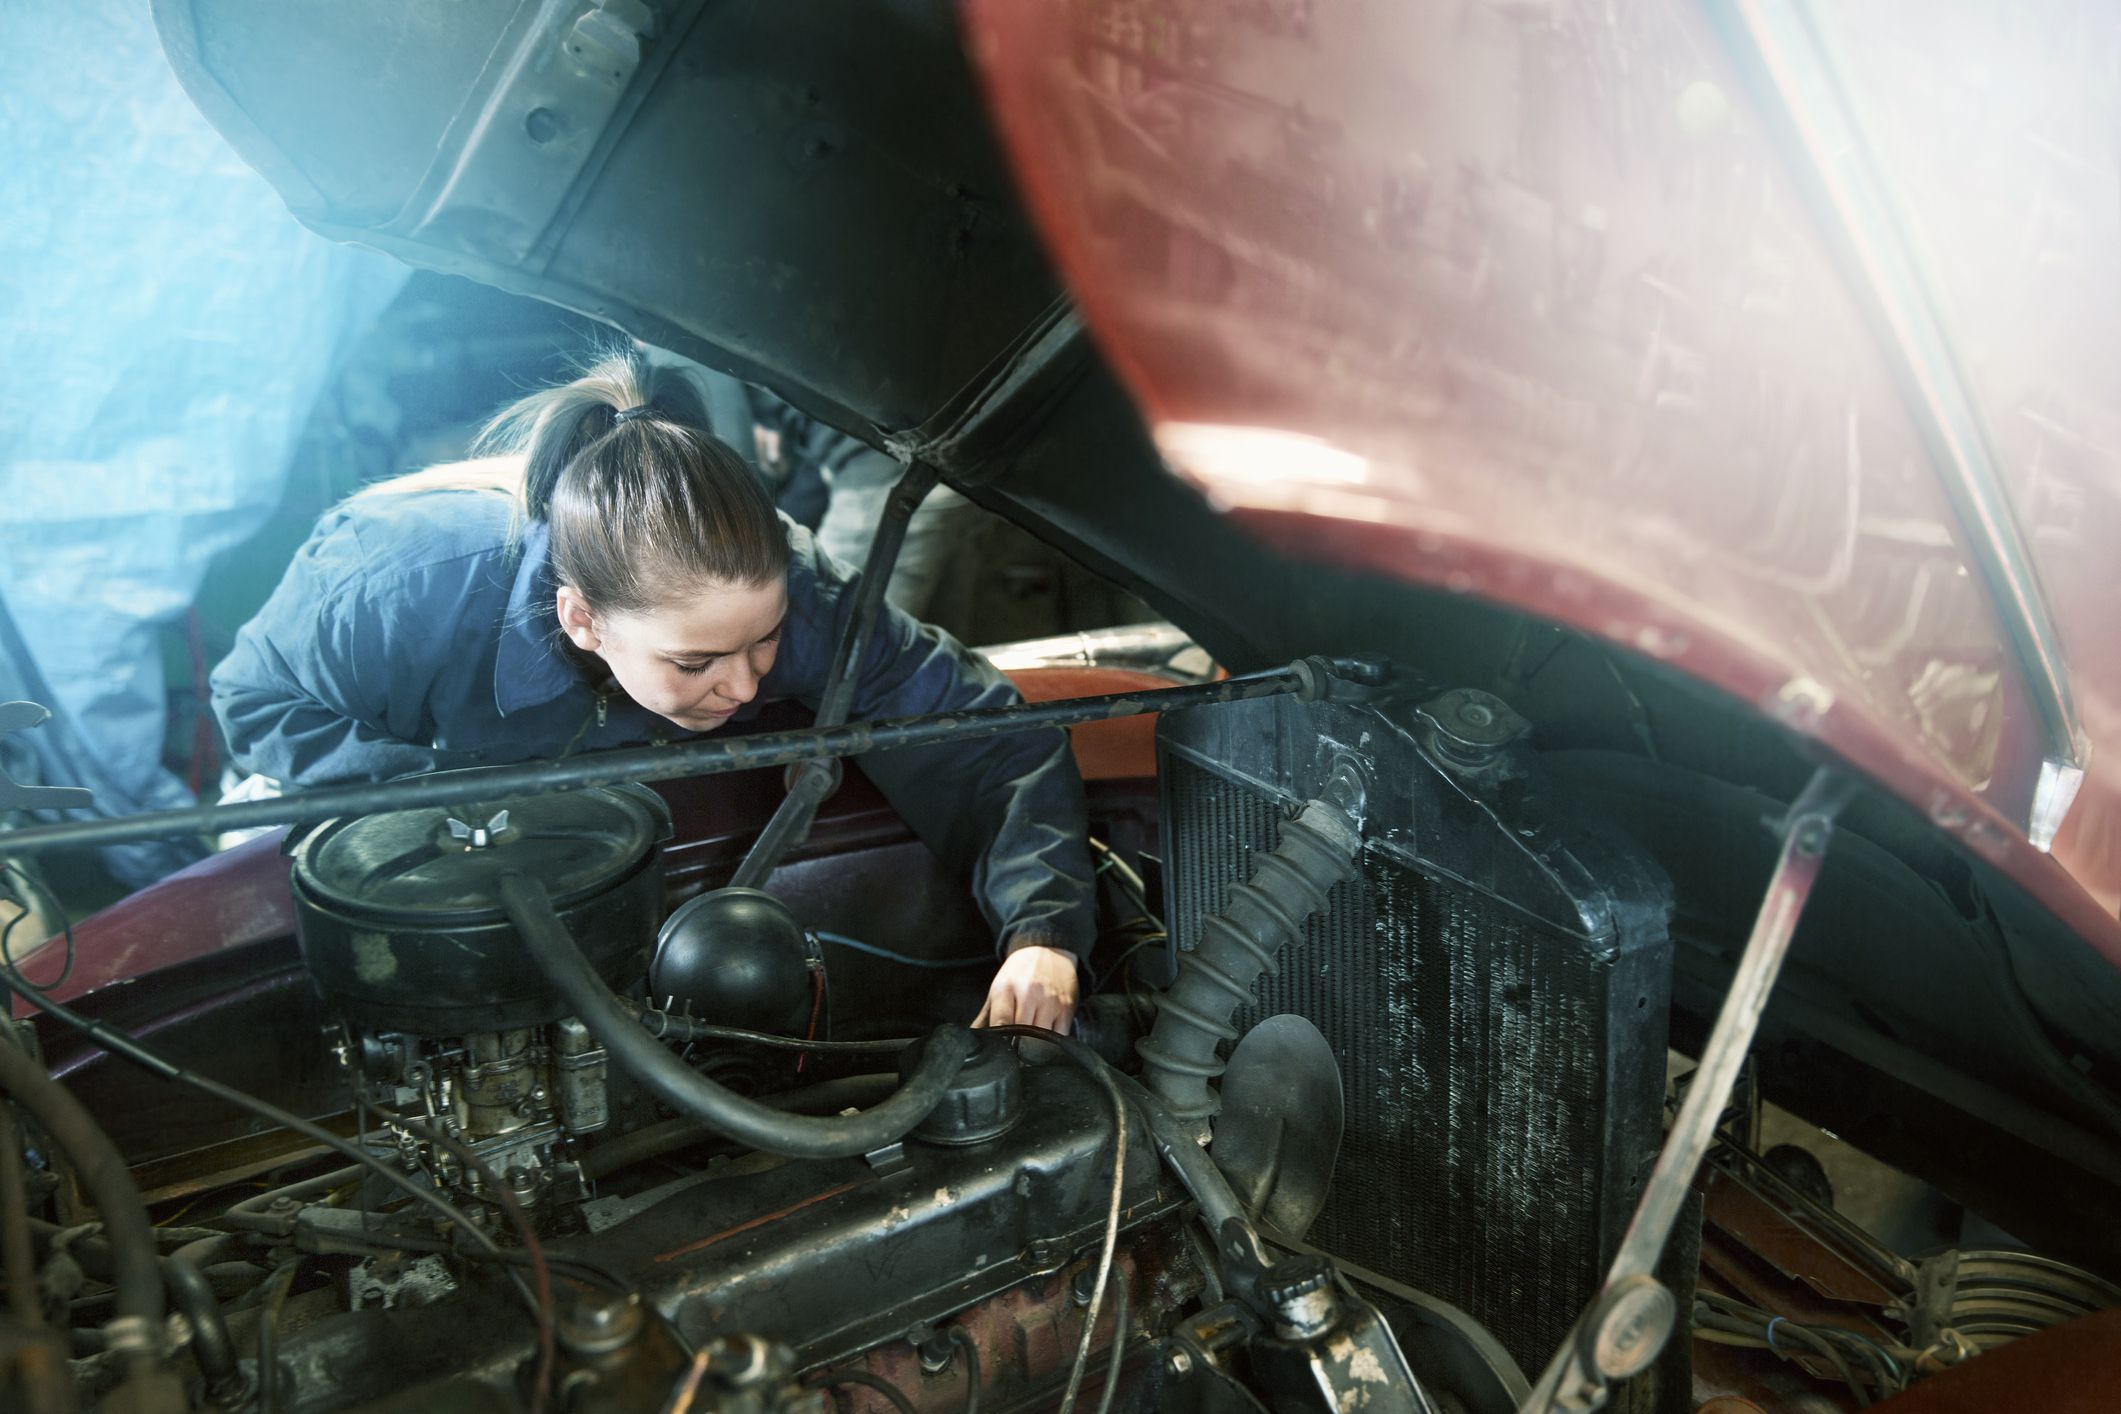 Engine Noises That Might Mean Trouble For Your Car Intermittent Stalling Problem 8211 Troubleshooting Ignition Systems